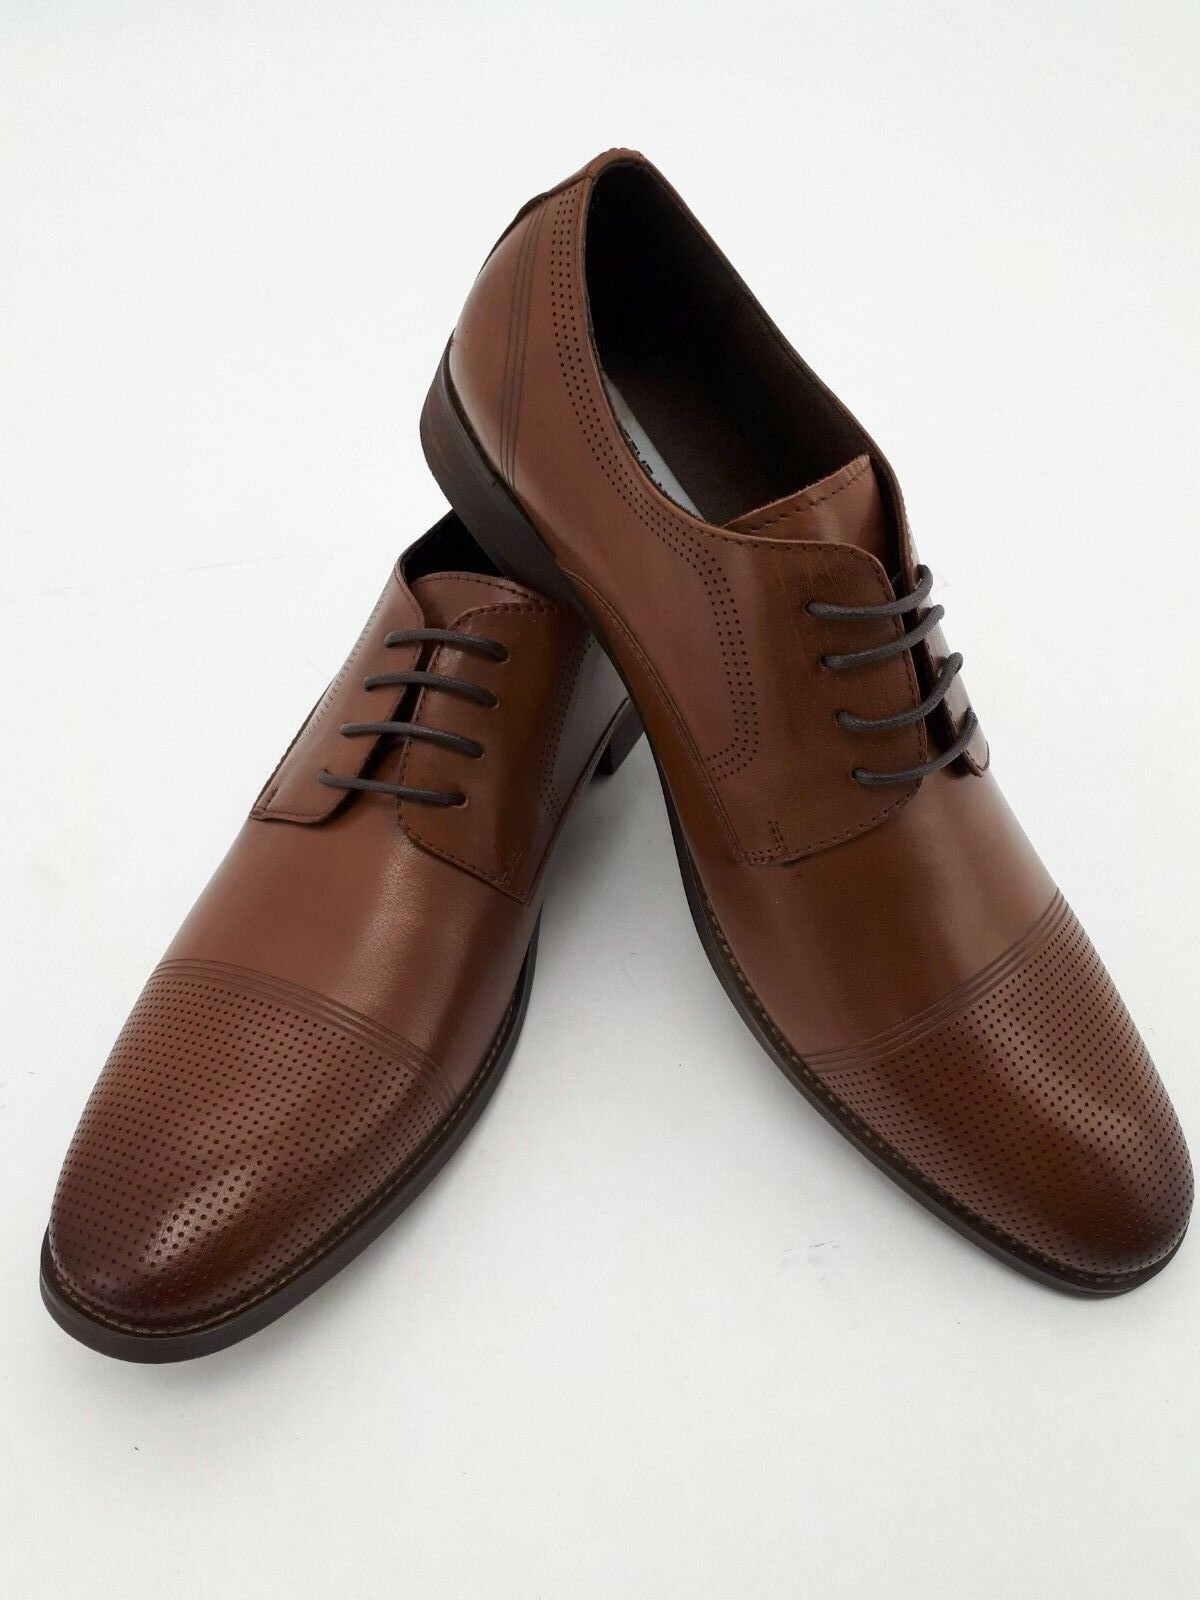 Steve Madden Men's Dress shoes  Cayhill I Tan I Size 8.5 (FFG17)